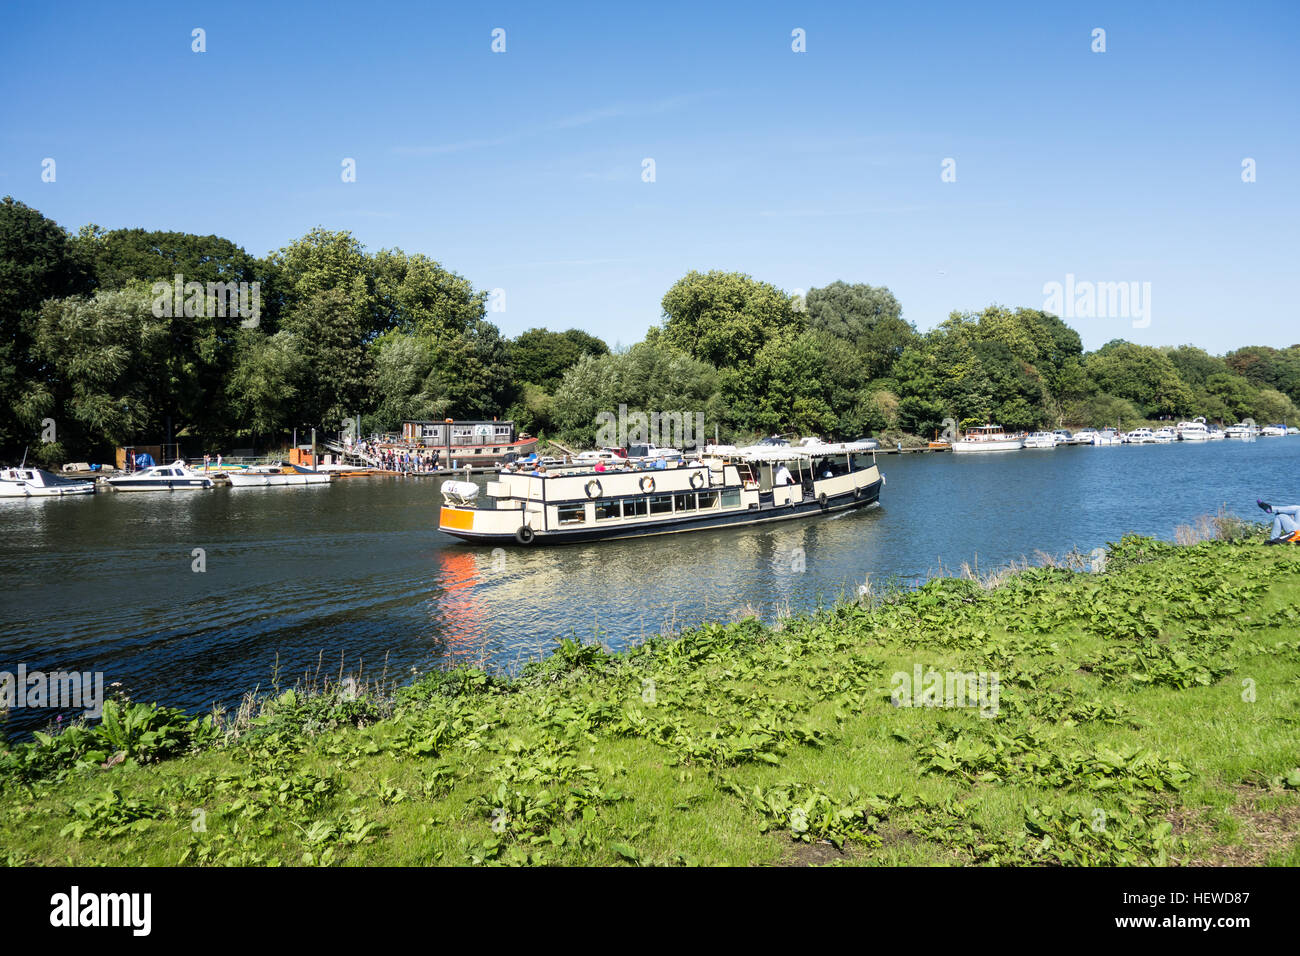 A river bus service along the River Thames in Richmond, London. - Stock Image